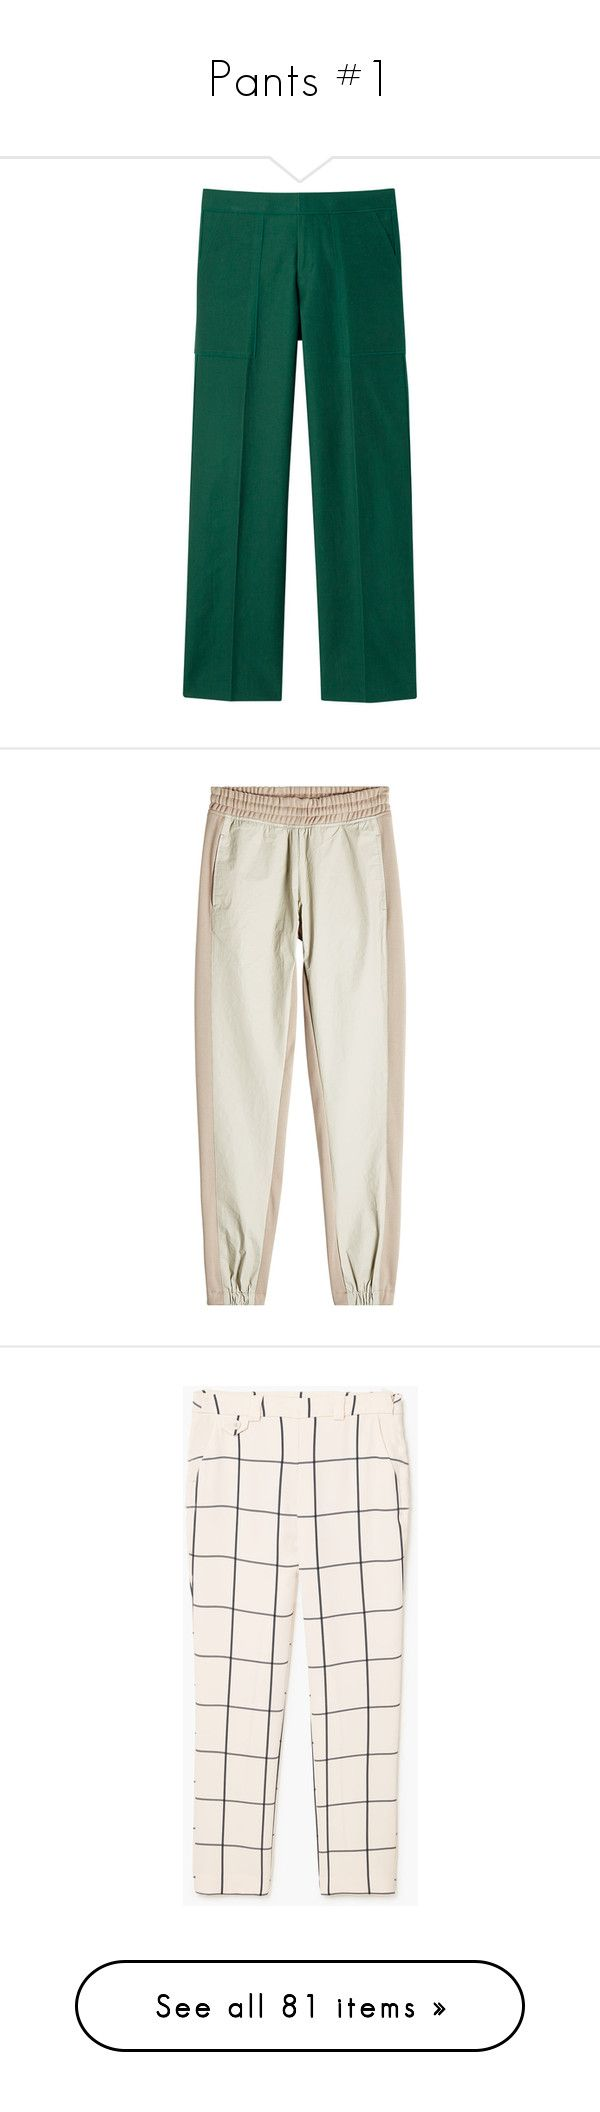 """""""Pants #1"""" by banana-lee ❤ liked on Polyvore featuring pants, activewear, activewear pants, beige, adidas originals, track pants, pantalones, side zip pants, pink trousers and mango trousers"""